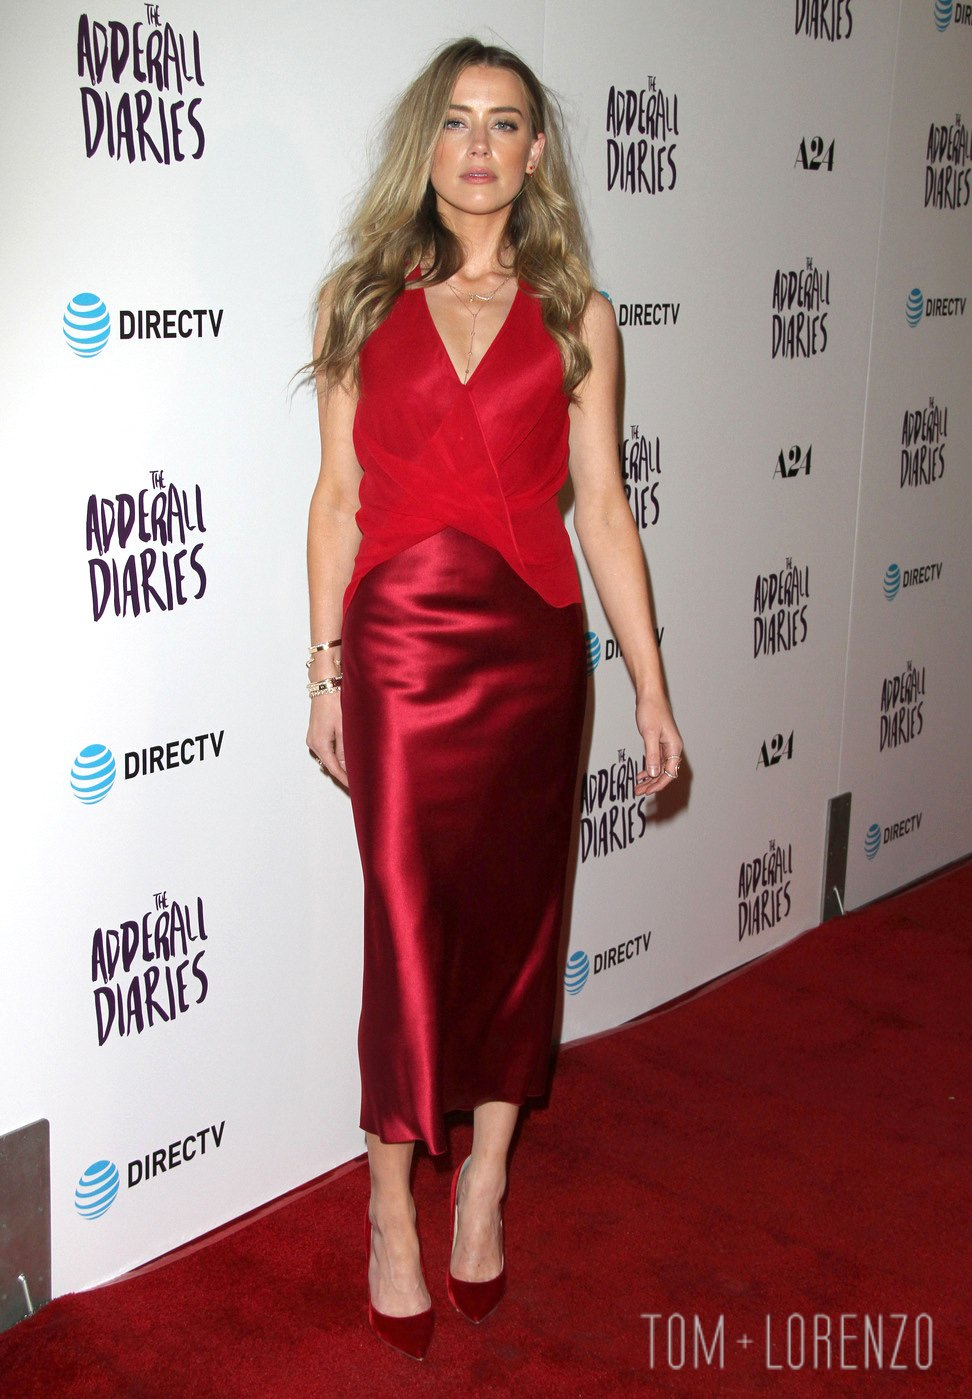 150574, Amber Heard attends the premiere of 'The Adderall Diaries' at Arclight Hollywood. Los Angeles, California. Tuesday April 12th 2016. Photograph: © Pacific Coast News. Los Angeles Office: +1 310.822.0419 UK Office: +44 (0) 20 7421 6000 sales@pacificcoastnews.com FEE MUST BE AGREED PRIOR TO USAGE